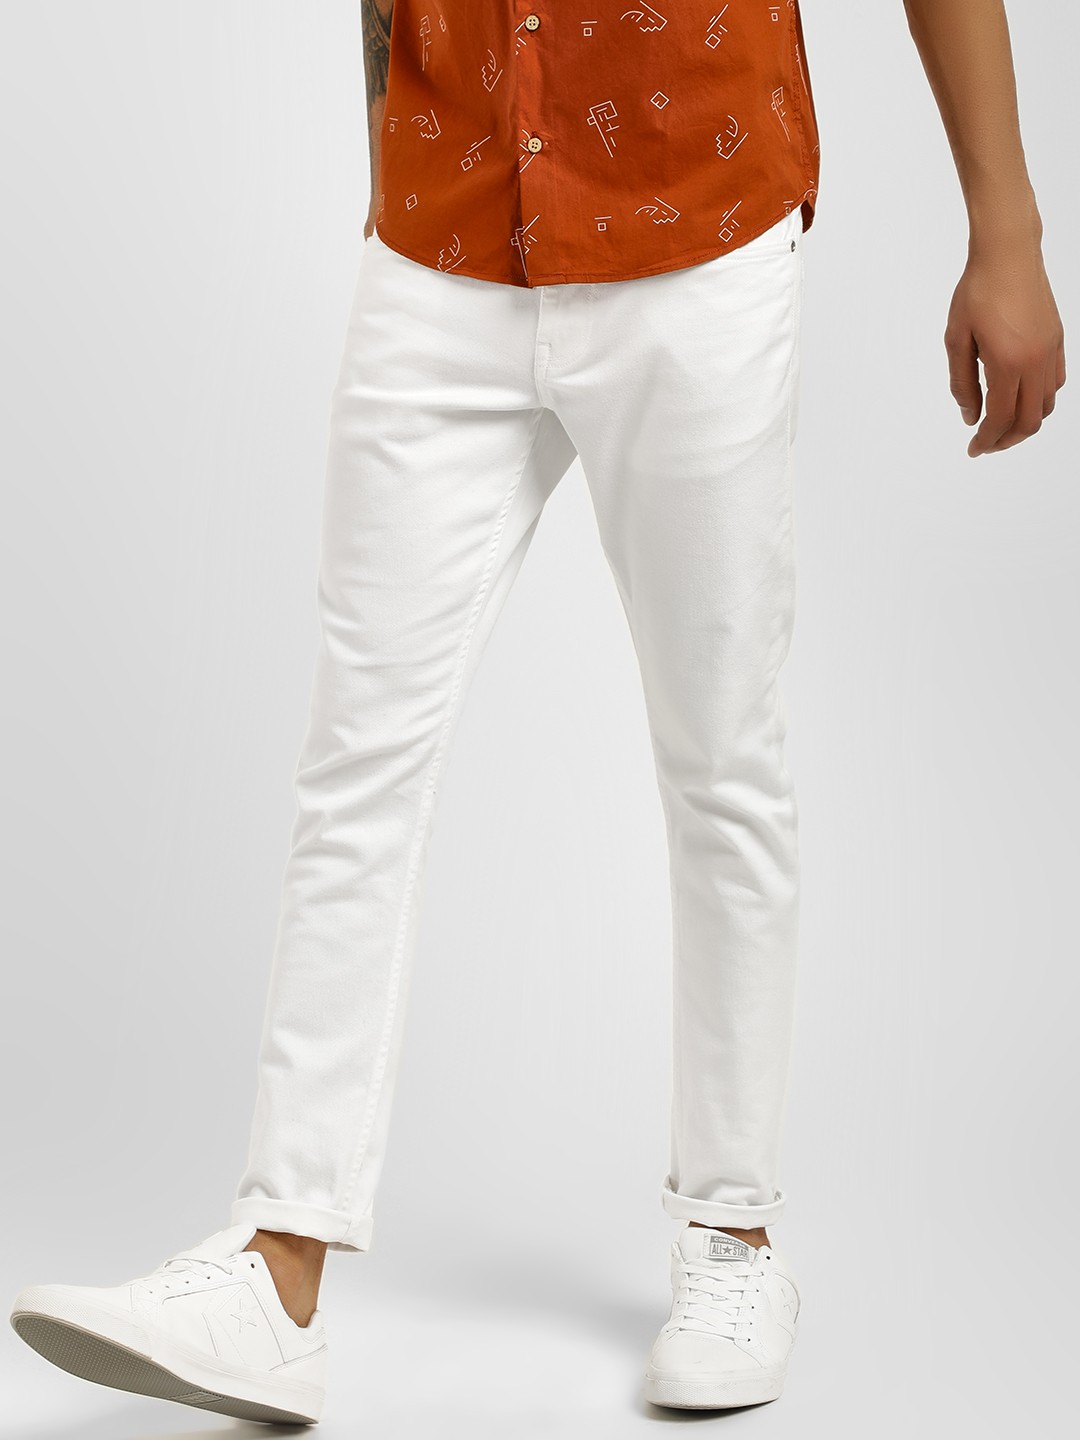 Blue Saint White Basic Skinny Fit Jeans 1